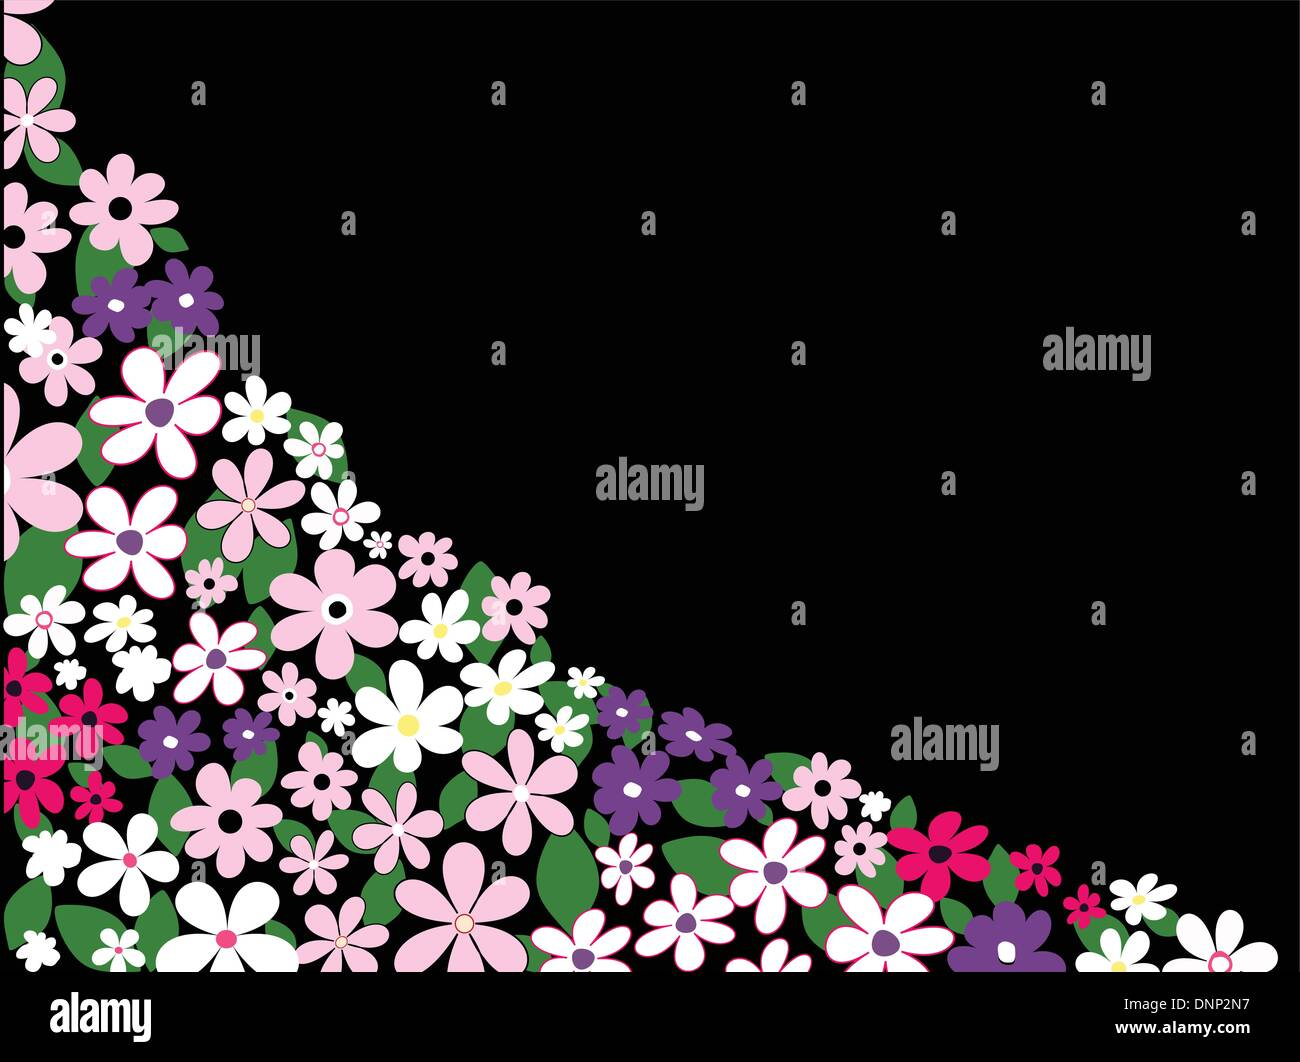 Background of summer flowers - Stock Image